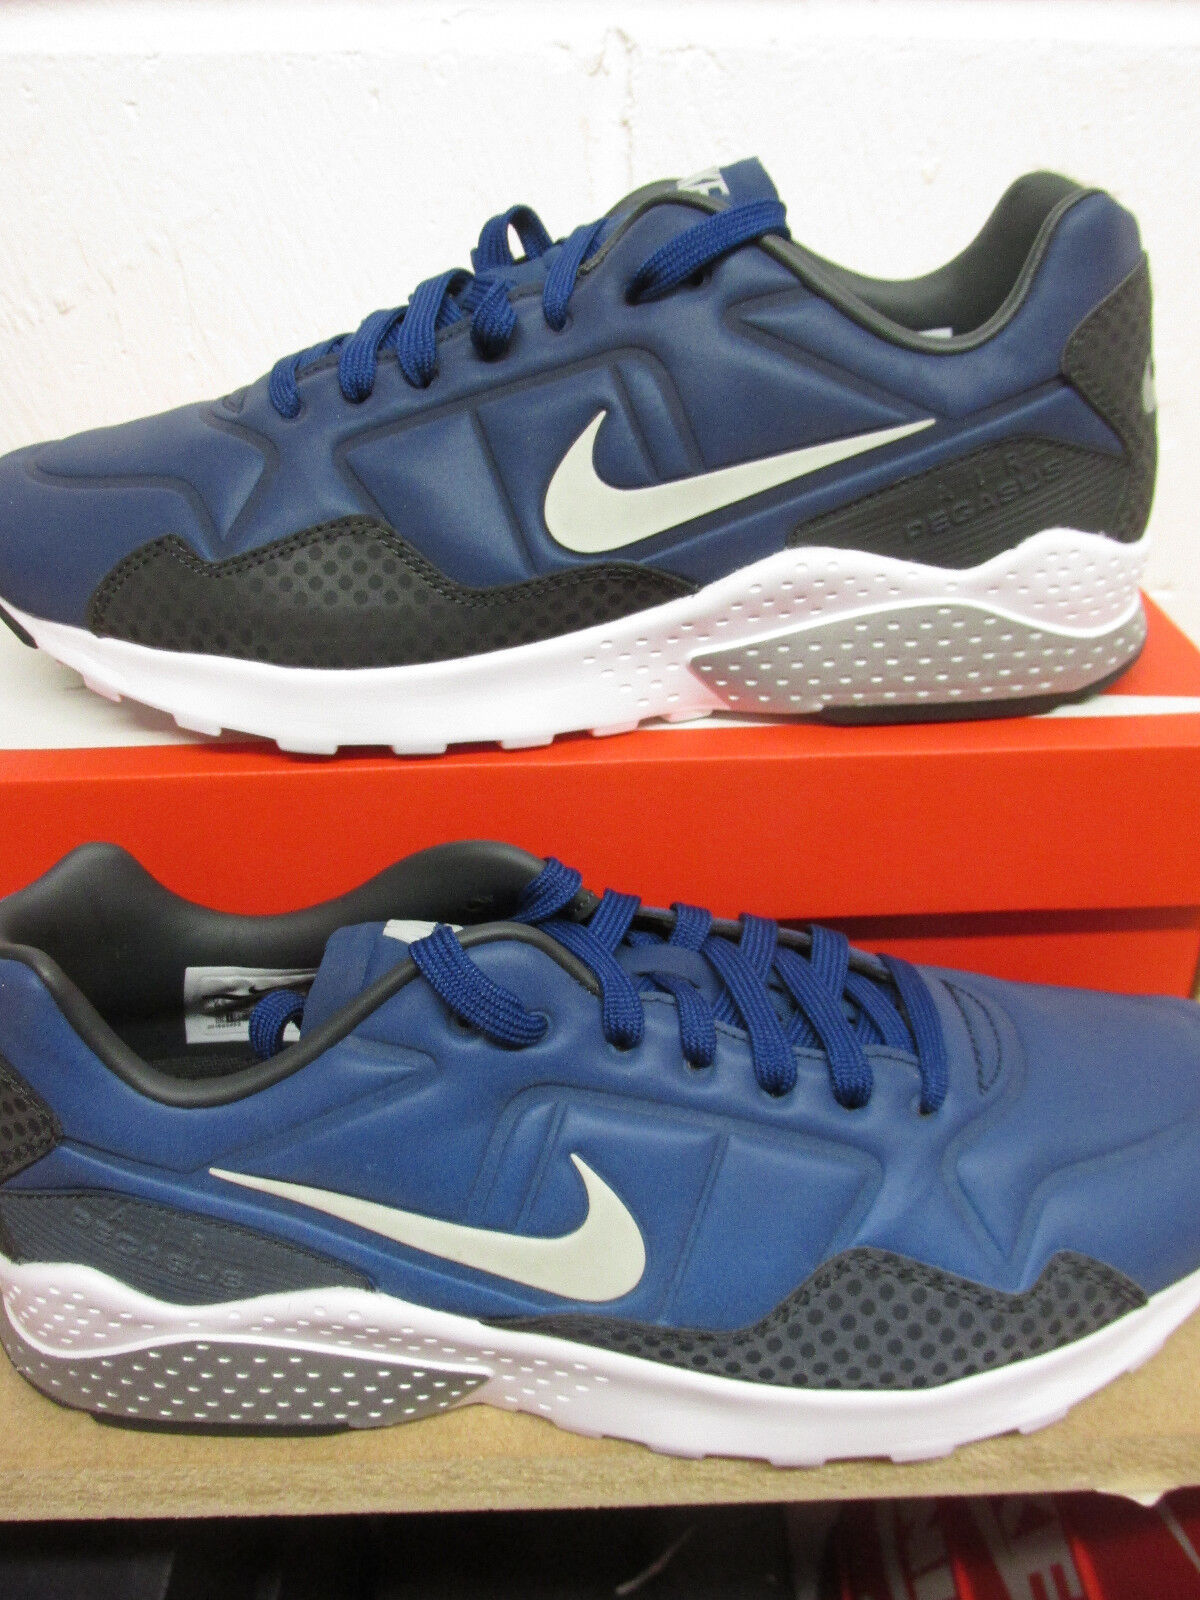 nike air zoom pegasus 92 PRM mens running trainers 844654 400 sneakers shoes